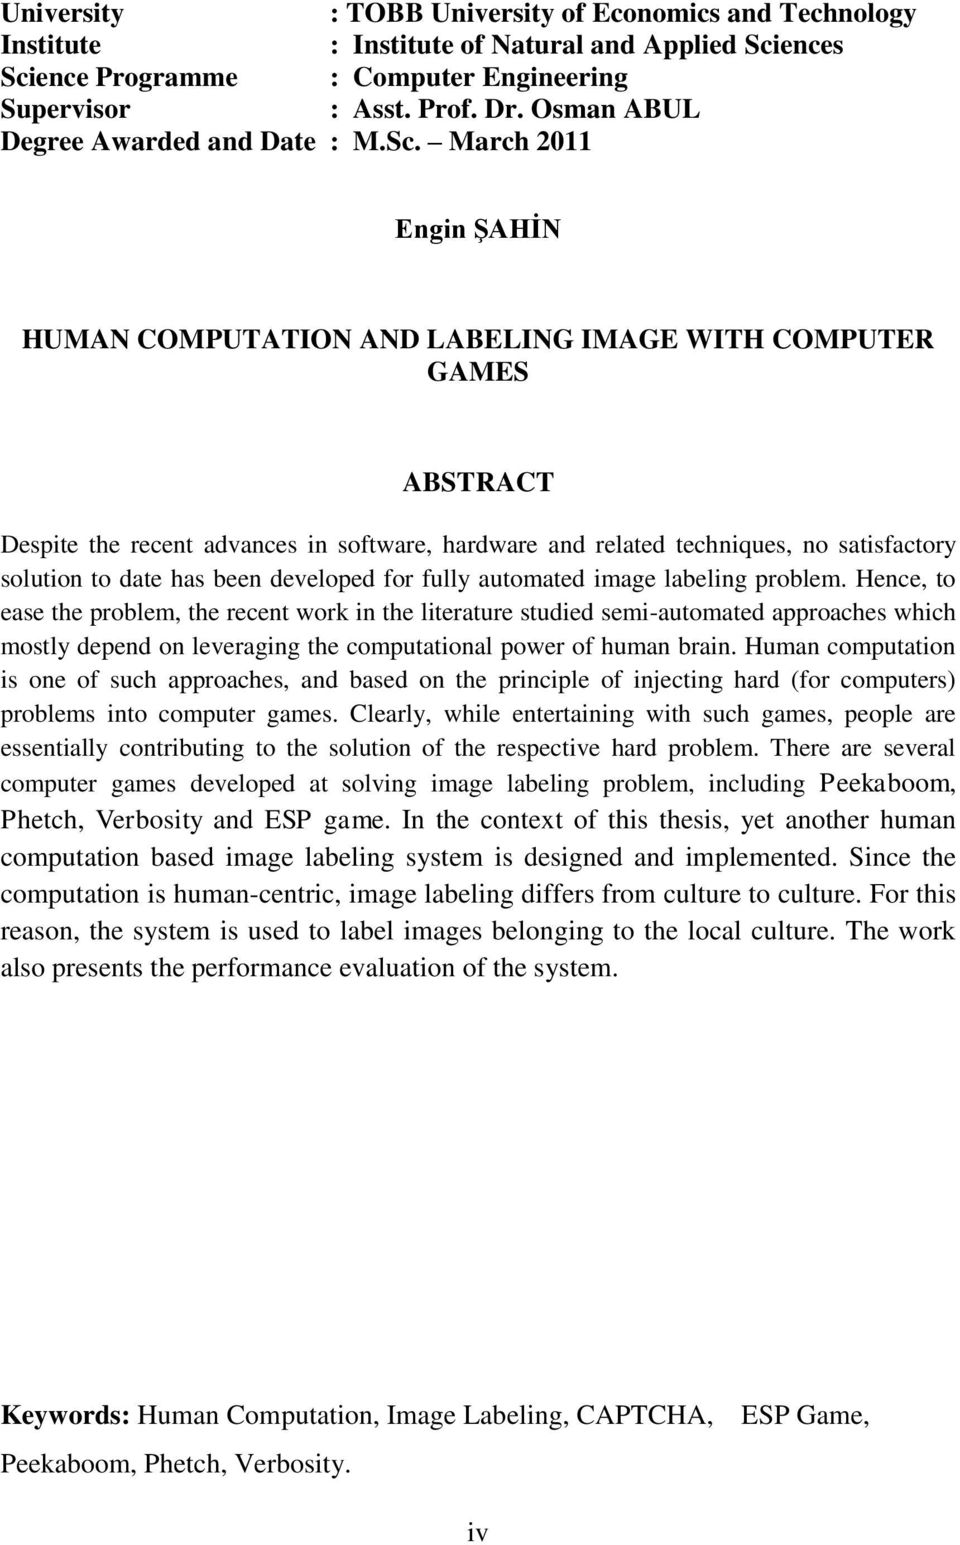 March 2011 Engin ġahġn HUMAN COMPUTATION AND LABELING IMAGE WITH COMPUTER GAMES ABSTRACT Despite the recent advances in software, hardware and related techniques, no satisfactory solution to date has